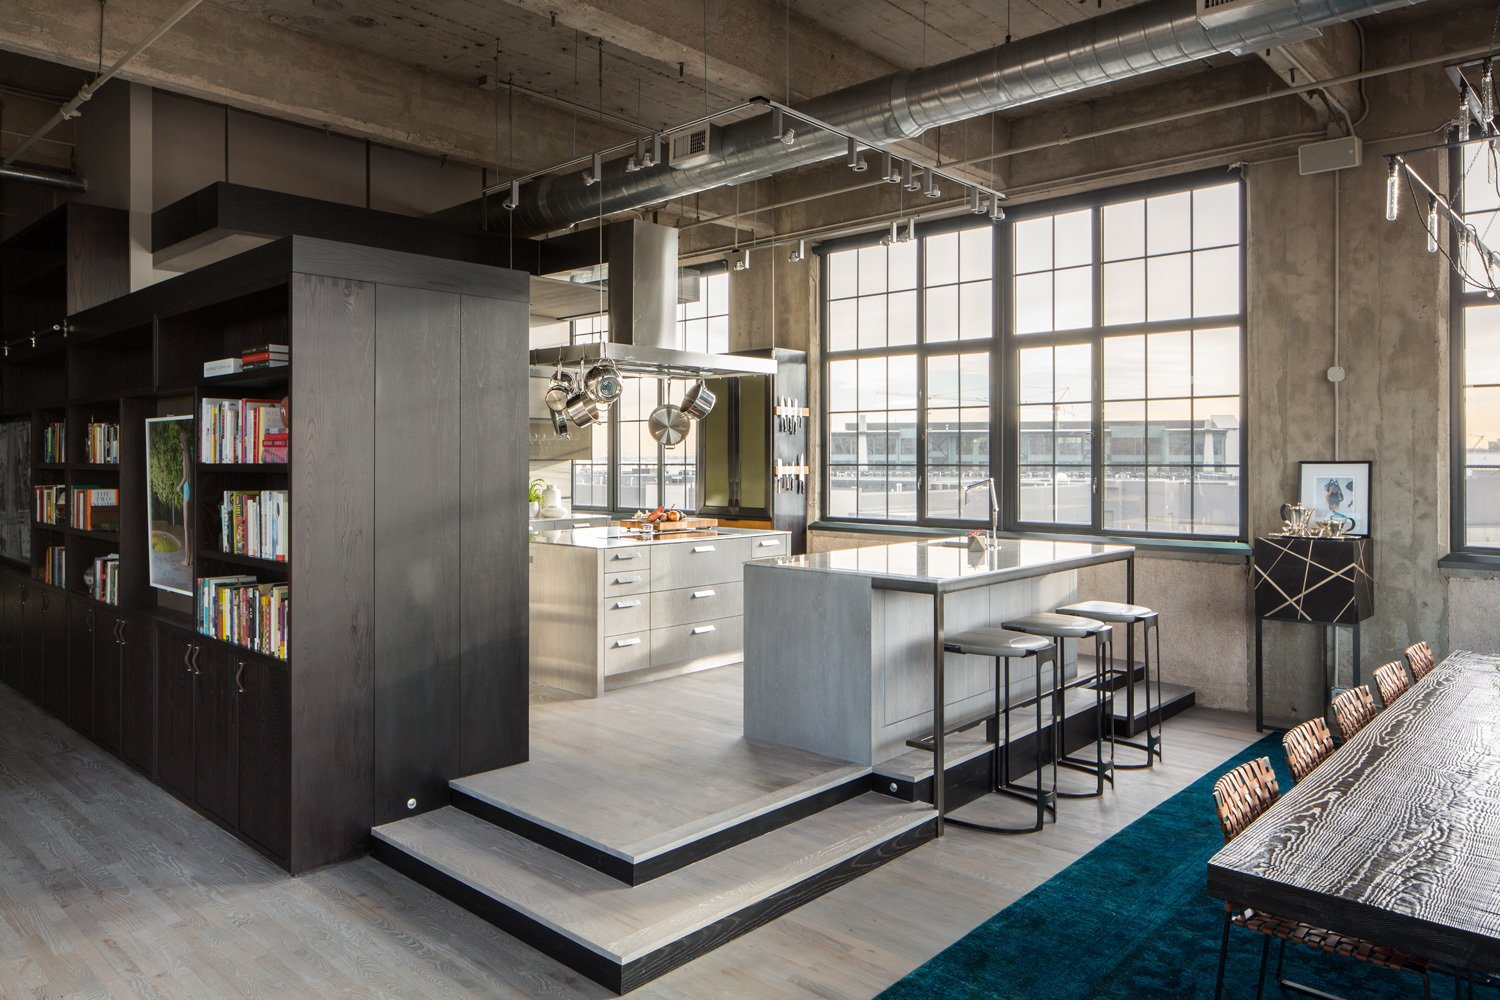 Industrial loft in a former flour mill collection of 6 photos by allie weiss dwell - Cuisine style loft ...